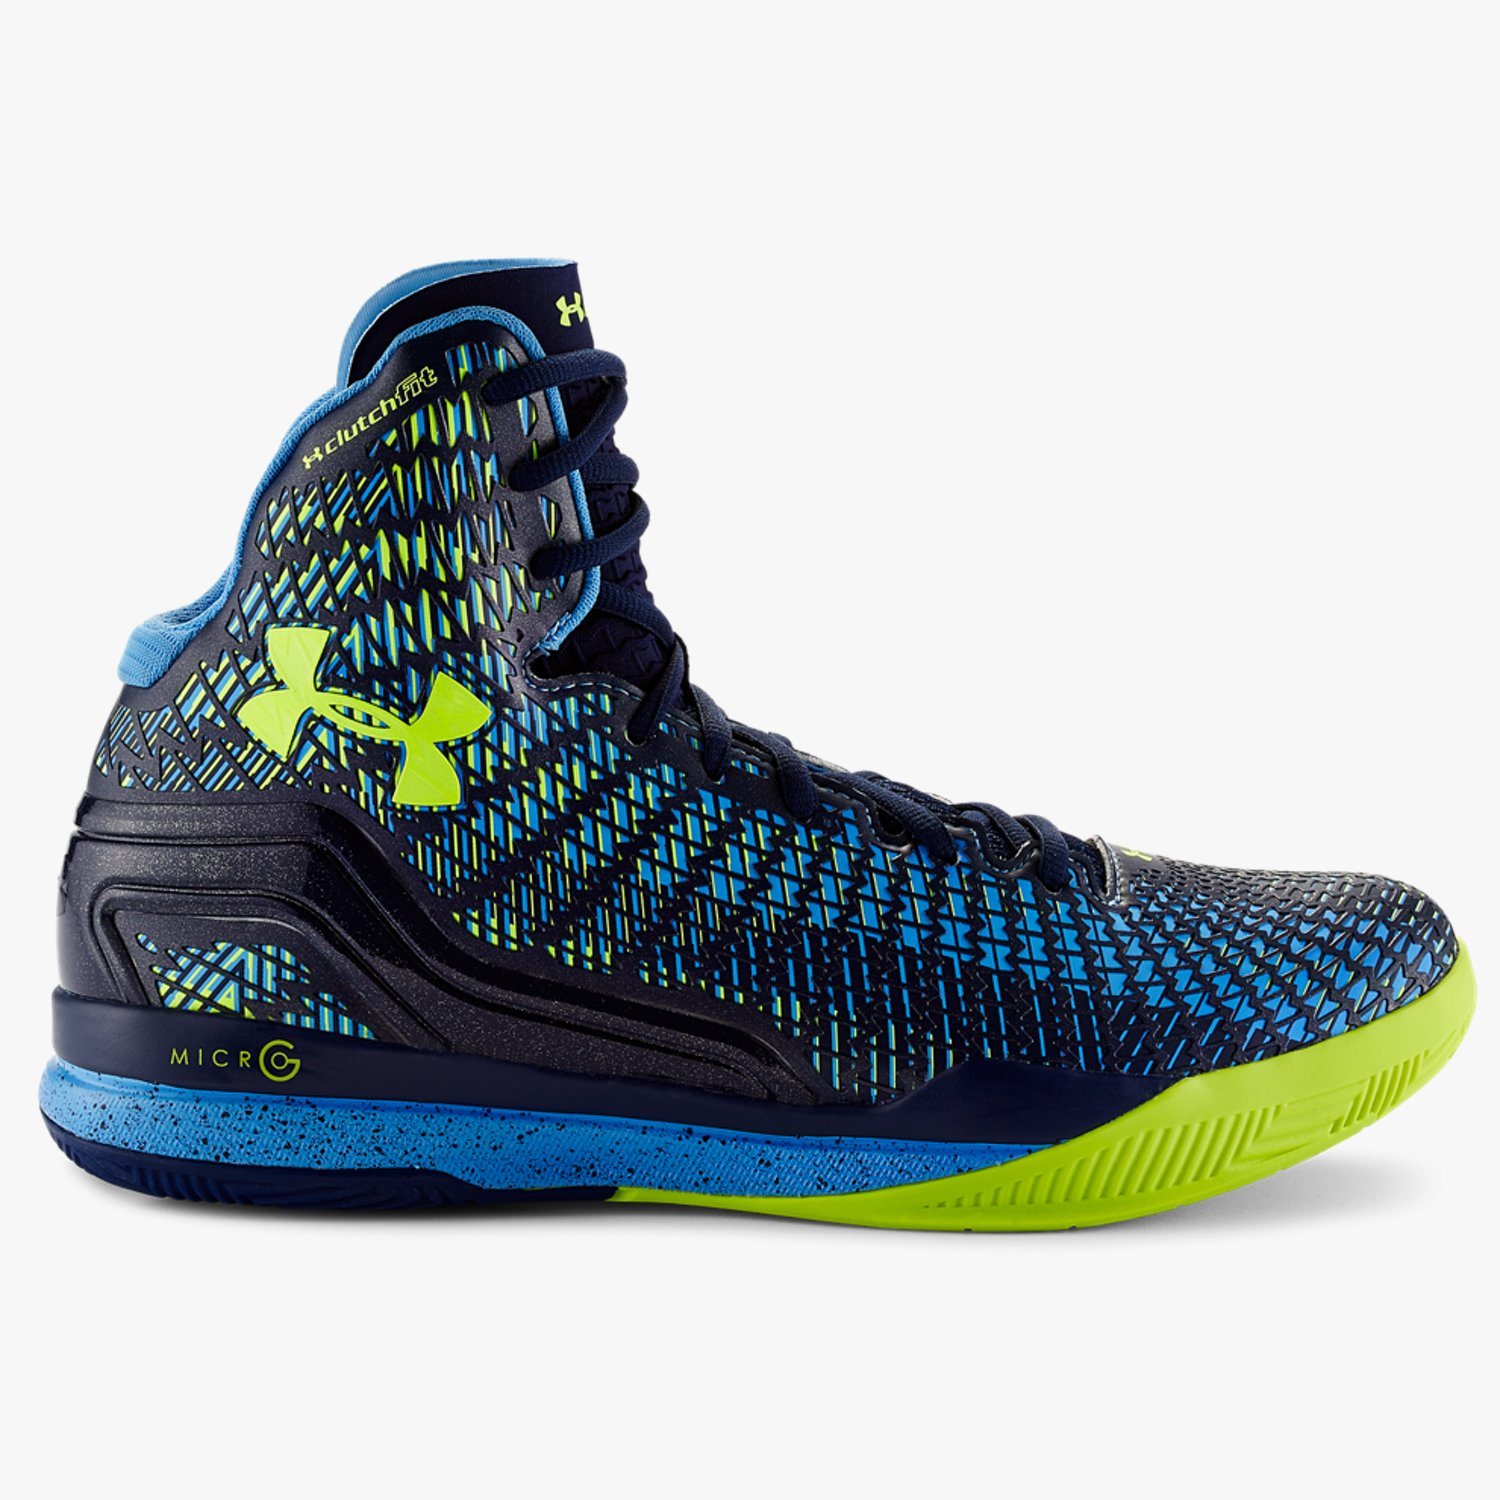 Under Armour UA ClutchFit Drive Mid Basketballschuhe Midnight Navy/Carolina Blue/High-Vis Yellow-30